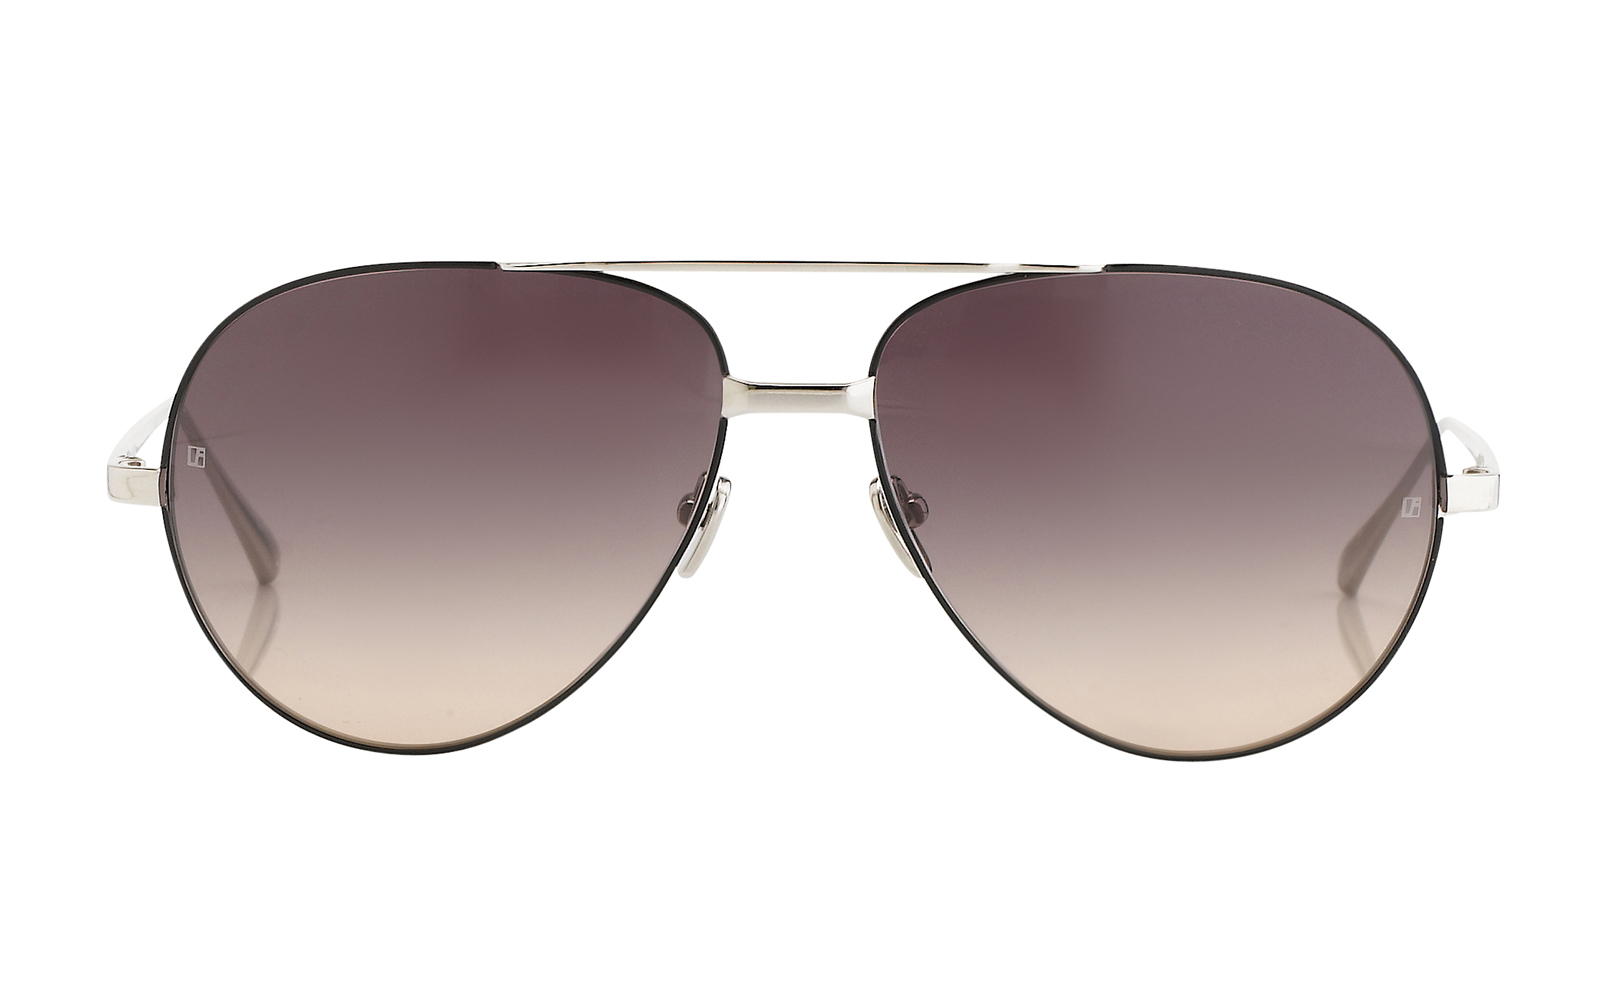 best aviator sunglasses  10 Best Aviator Sunglasses For Any Season: Linda Farrow Luxe ...